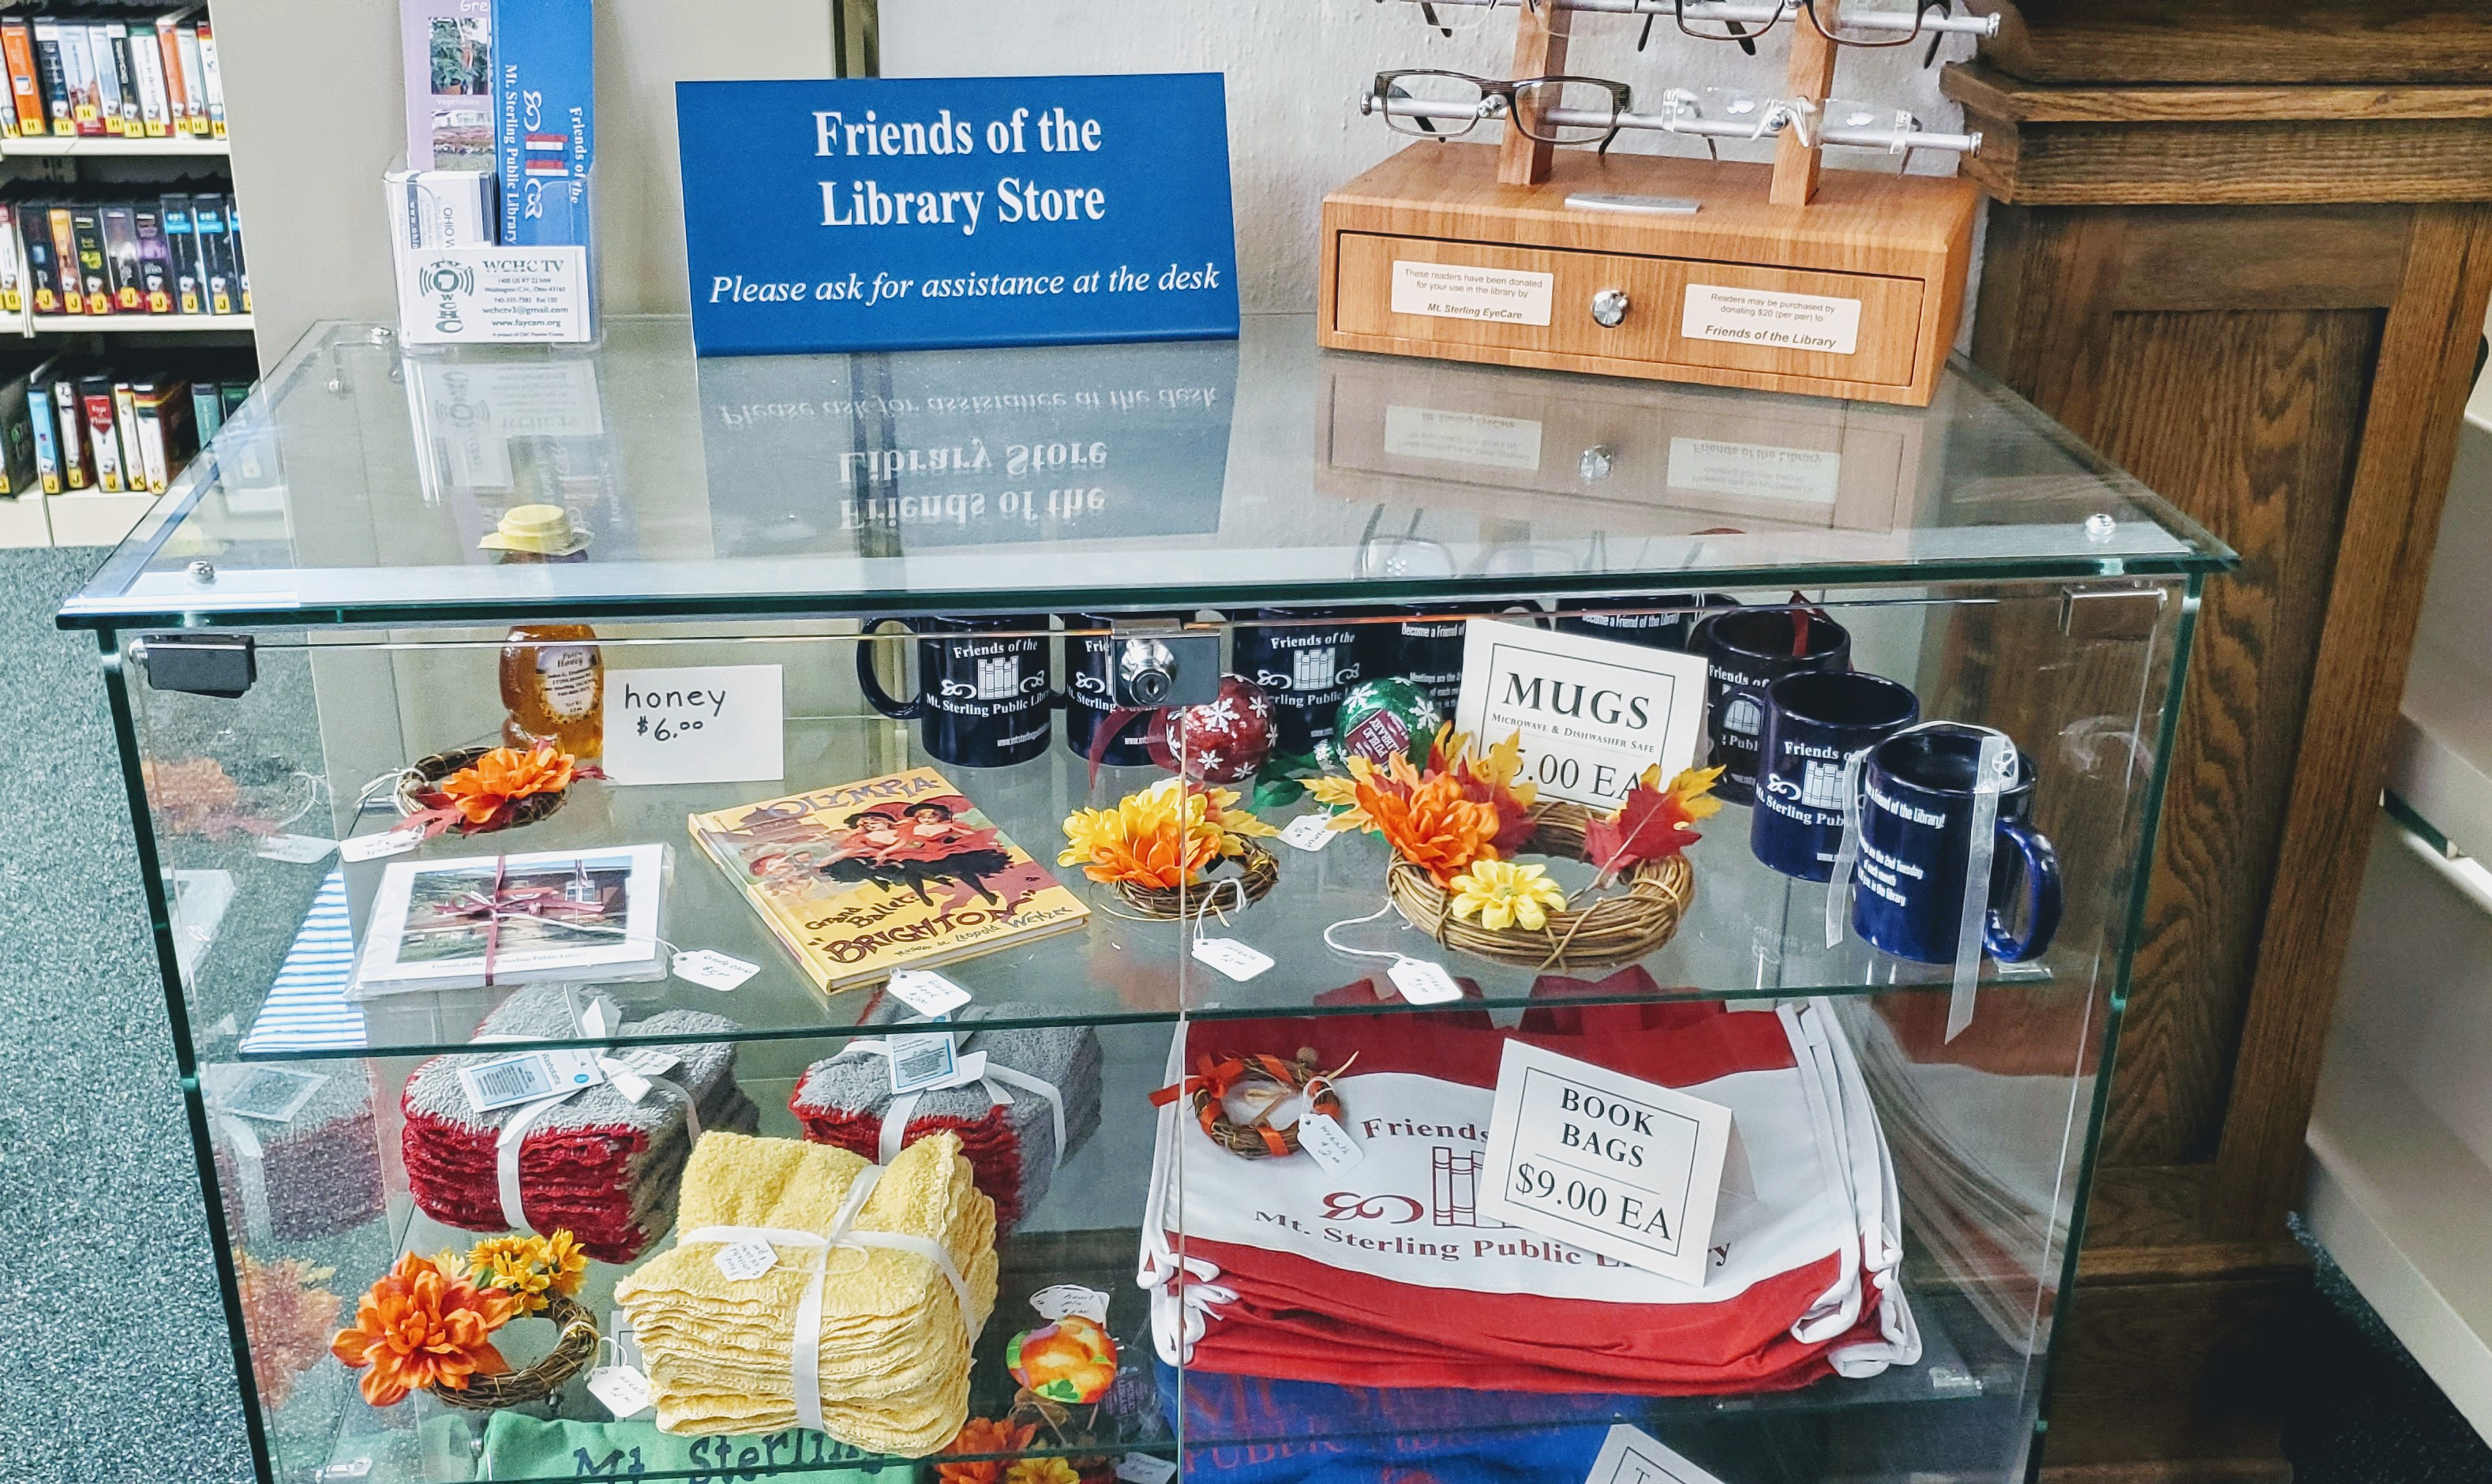 Come browse and shop from our Friends of the Library sales display. They have added a lot of new and seasonal items!